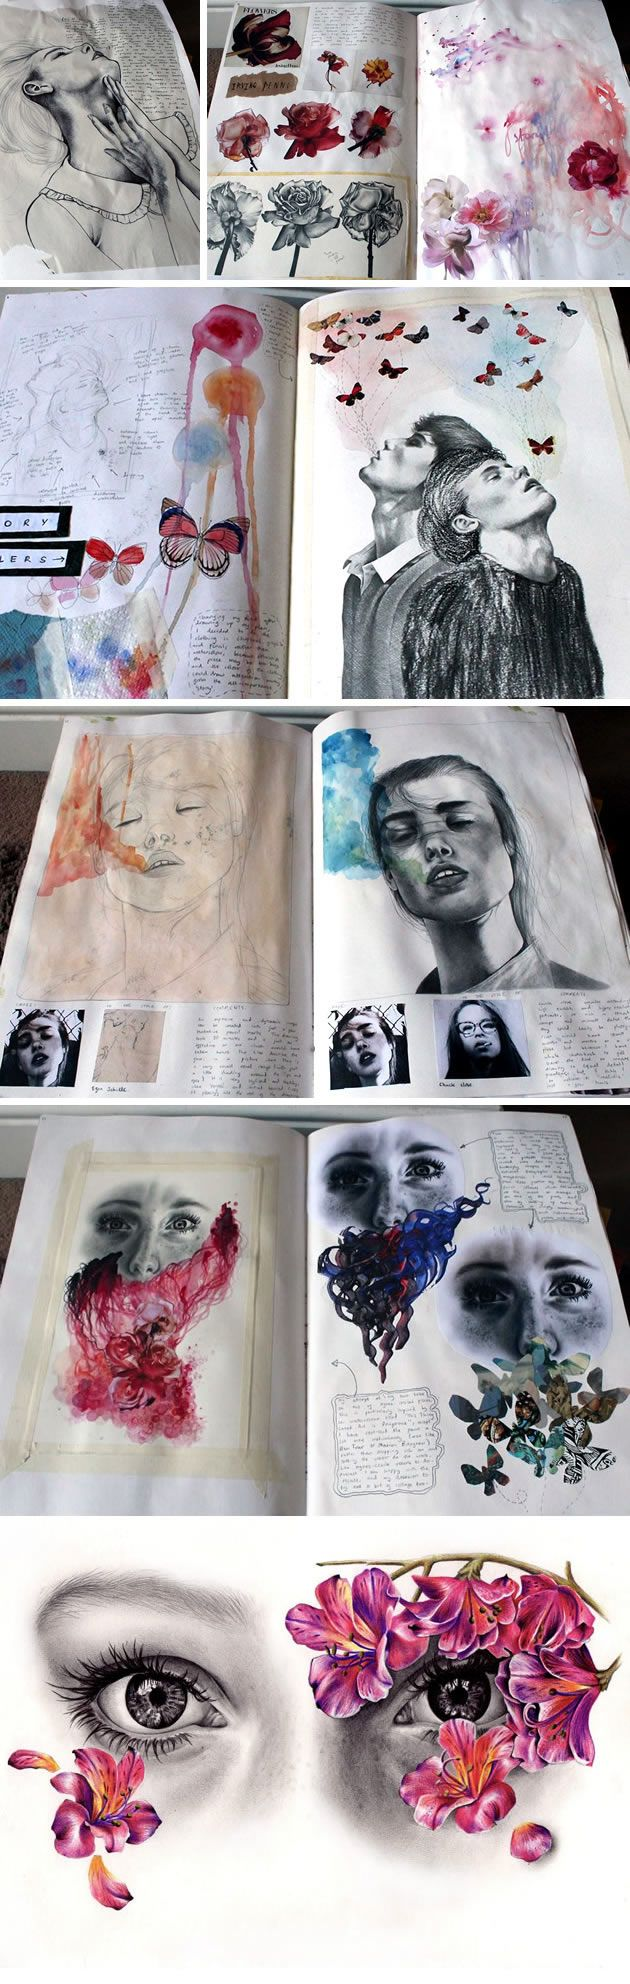 This sequence of work (primarily Kate's A Level Art sketchbook pages) shows…